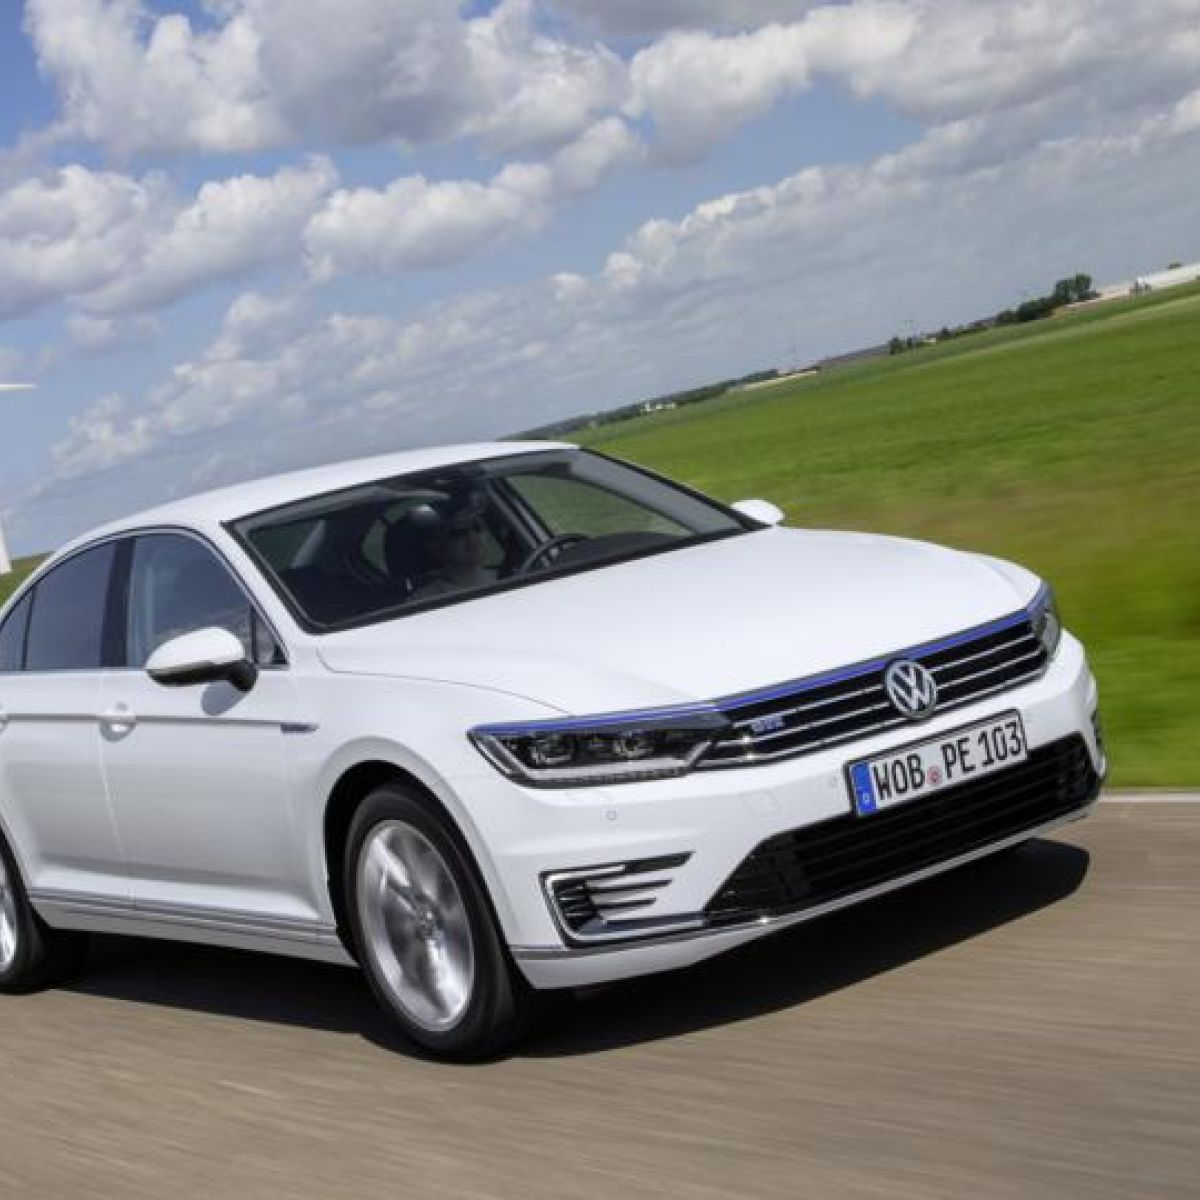 Volkswagen electric hybrid aims to bring technology within range